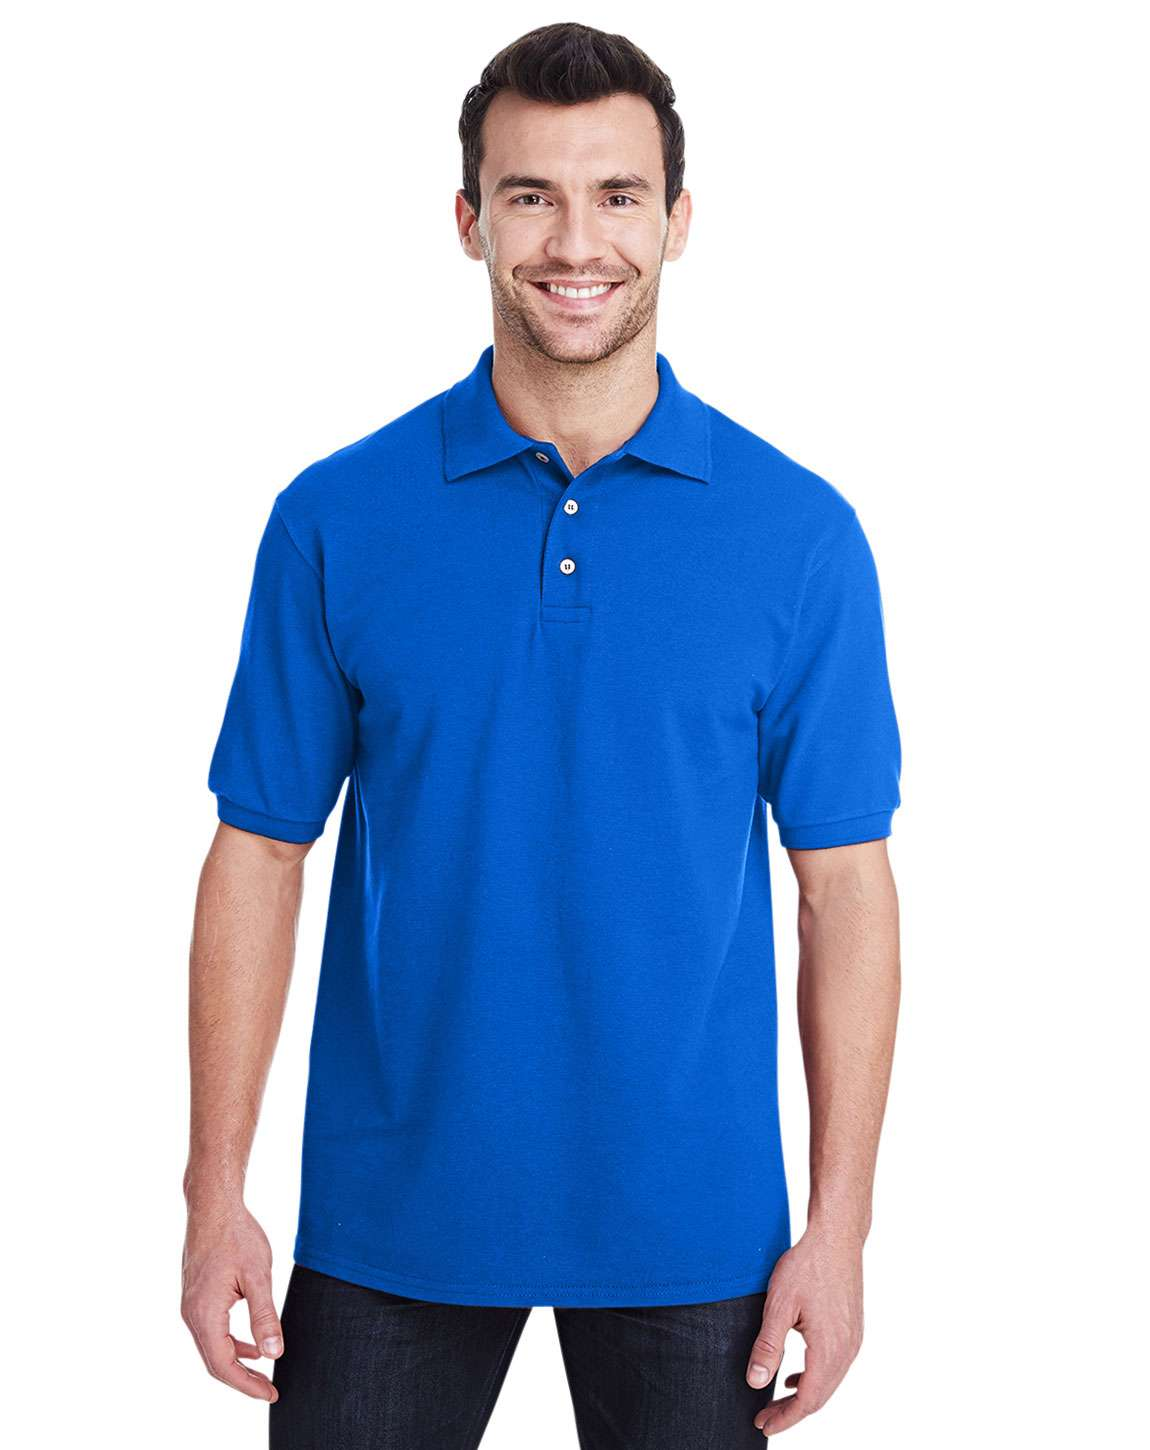 Jerzees 443MR Adult Premium 100% Ringspun Cotton Pique Polo